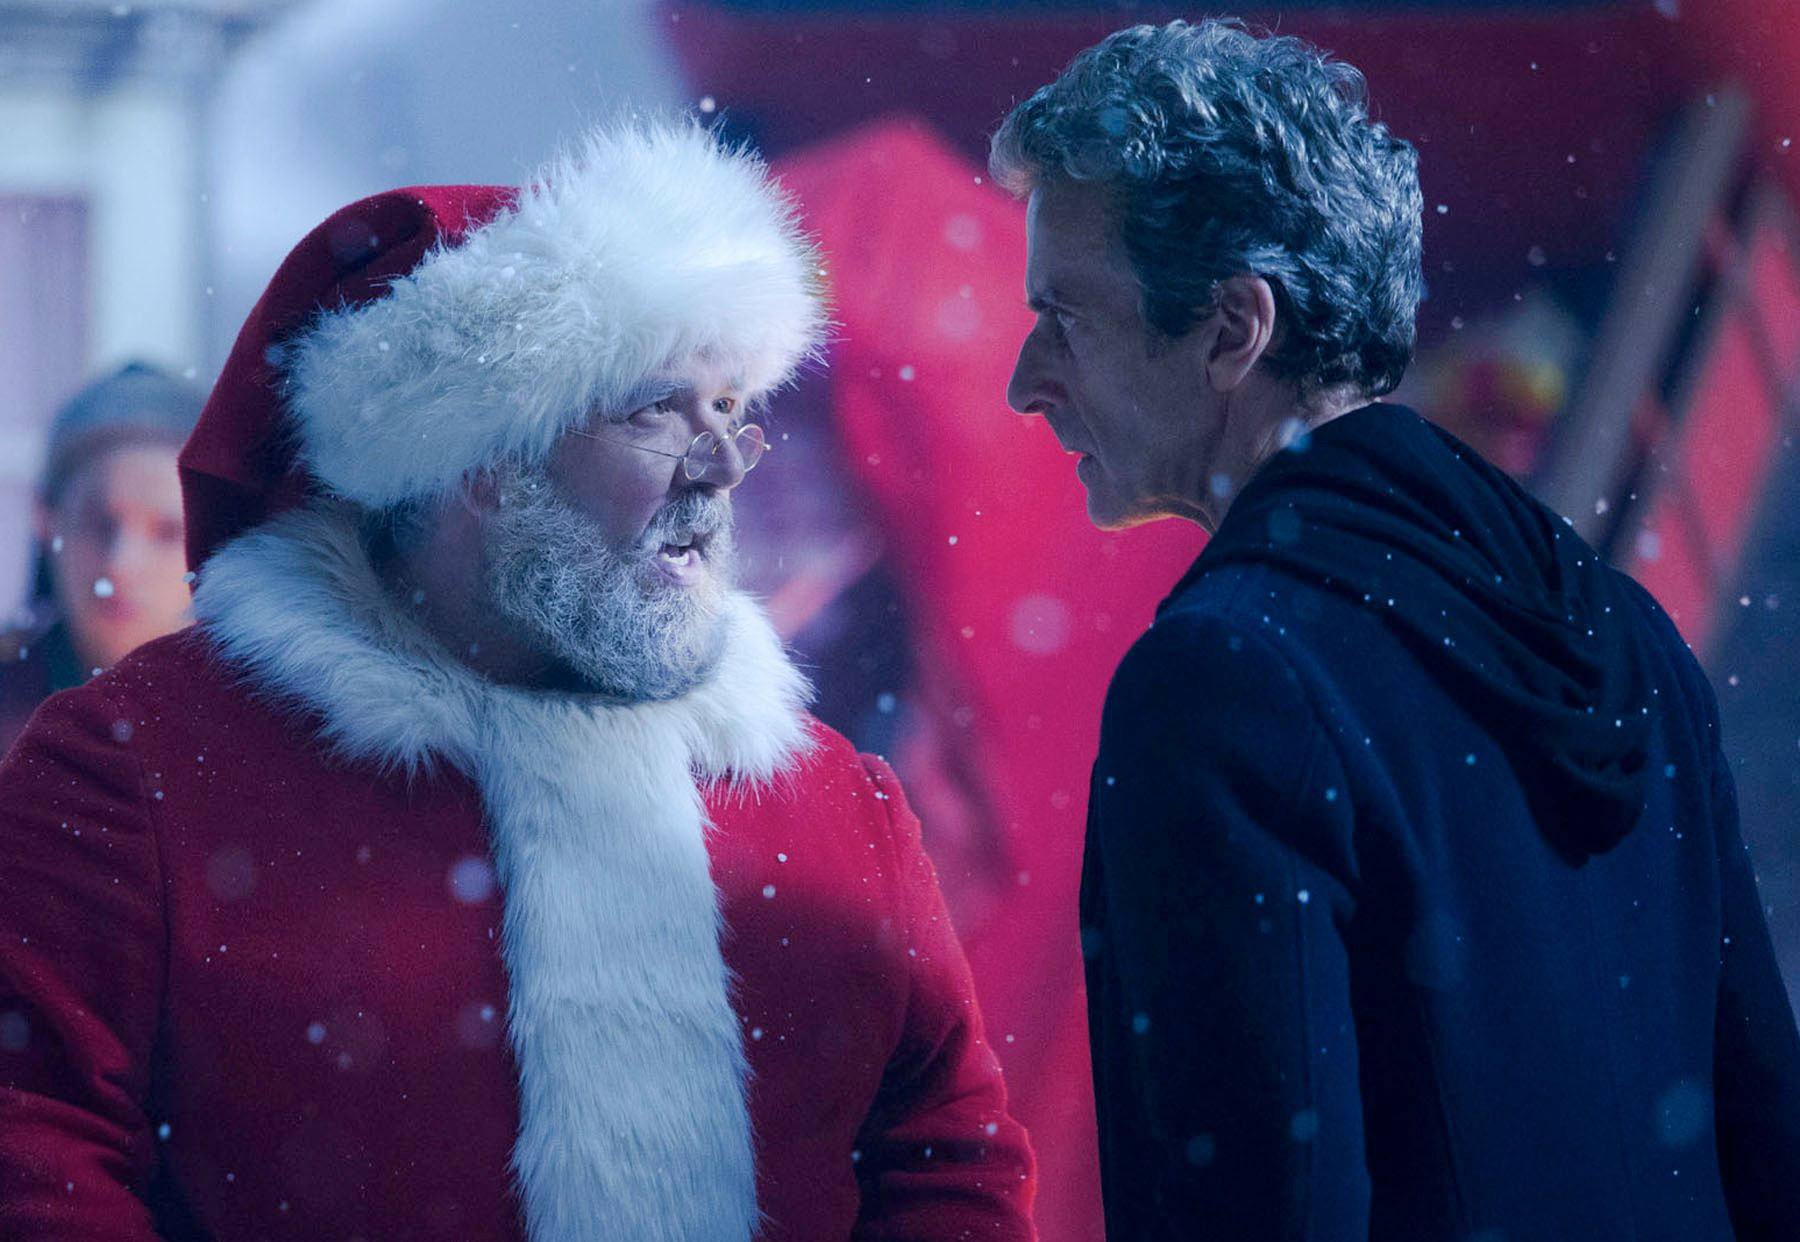 doctor who s8 christmas special - The Last Christmas